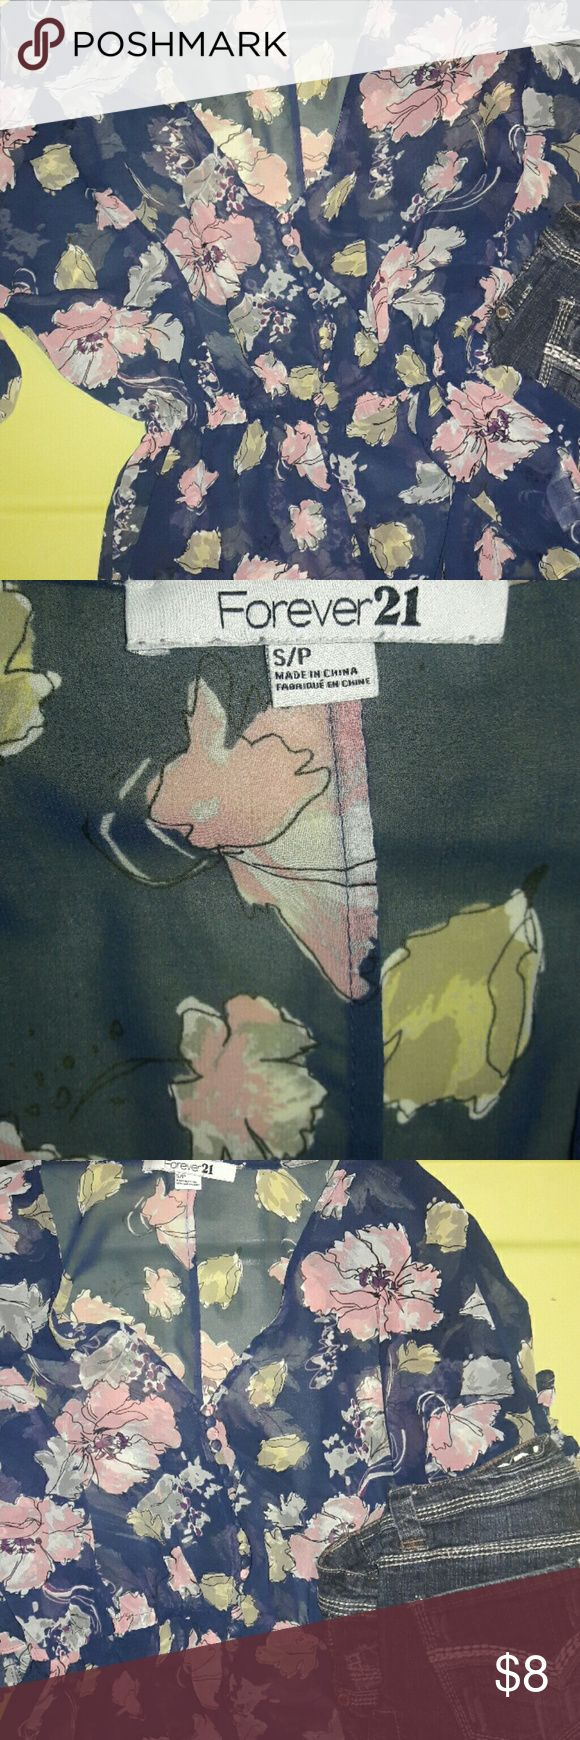 Forever 21 Floral top This soft sheer blouse with floral print of pinks, marron inside flower and green leaves on a royal blue is so Sweet! Batwing sleeves with elastic gathering at waist.. Forever 21 Tops Blouses